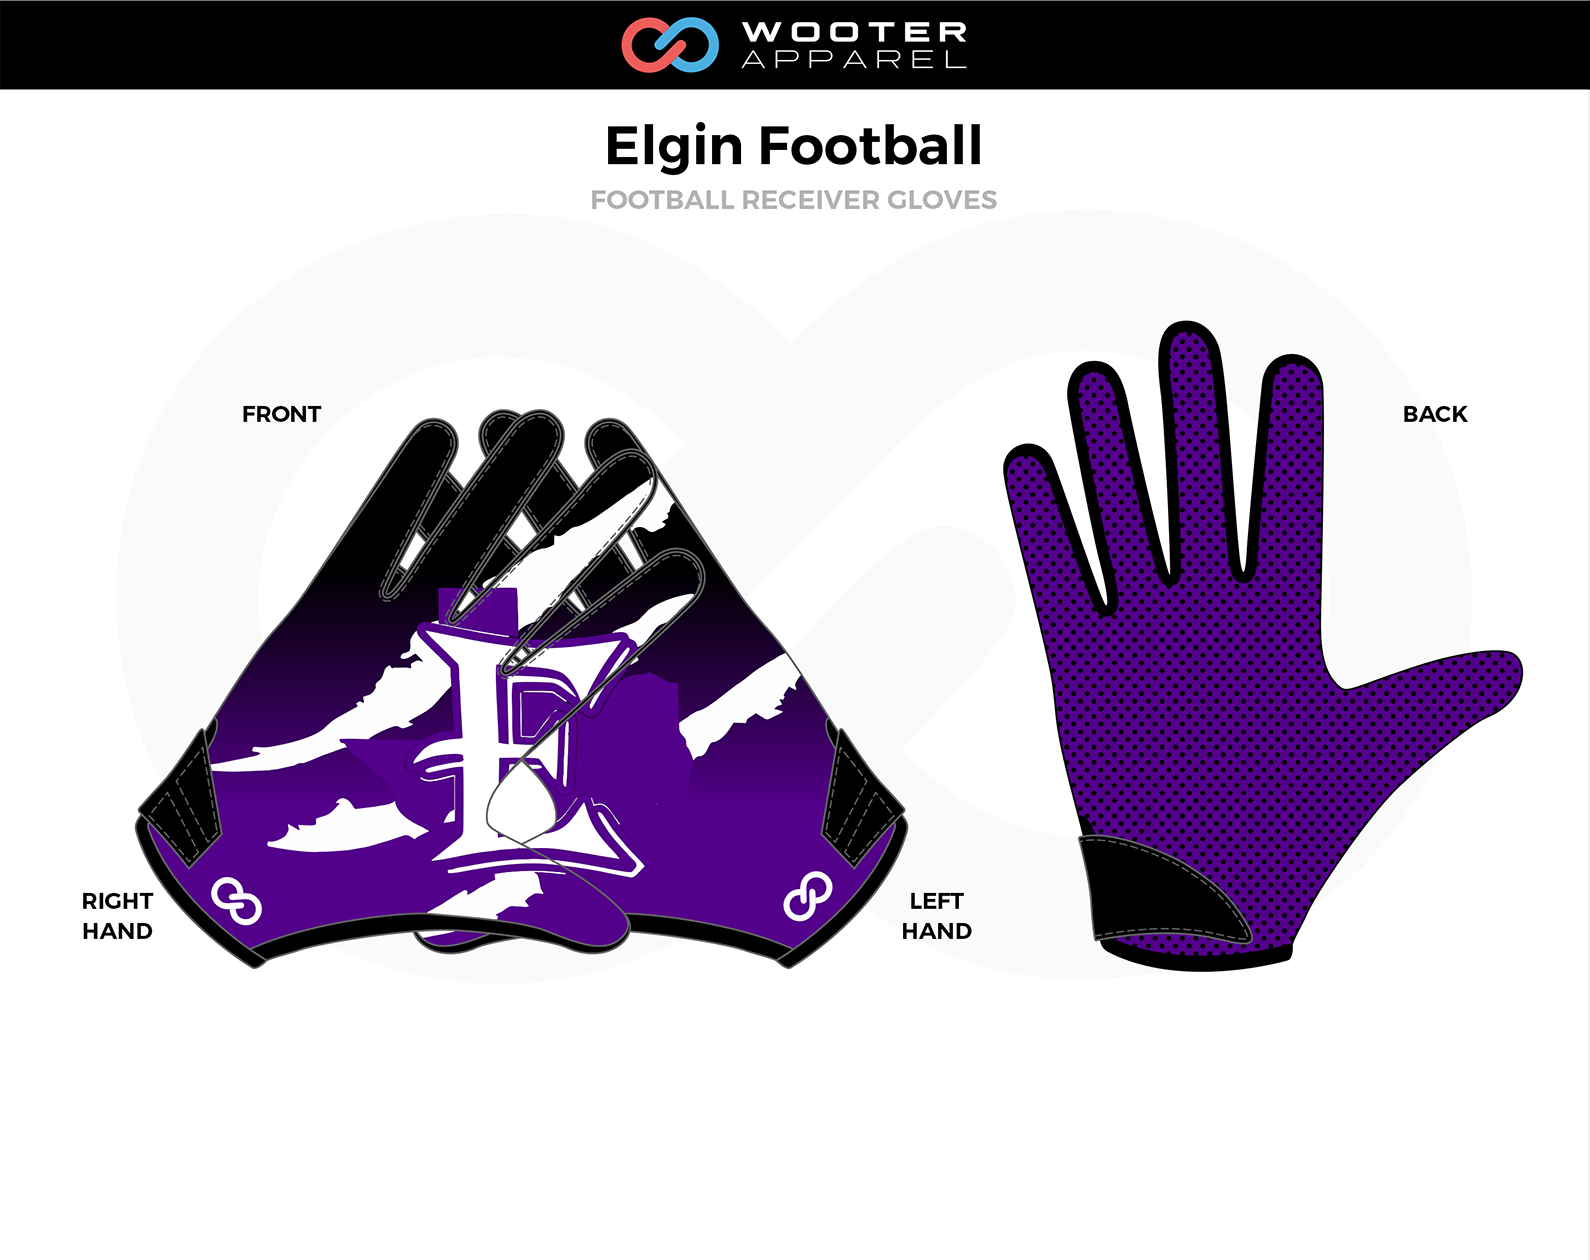 WS0208 - [Jared] Elgin Football Shop Items GLOVES.png